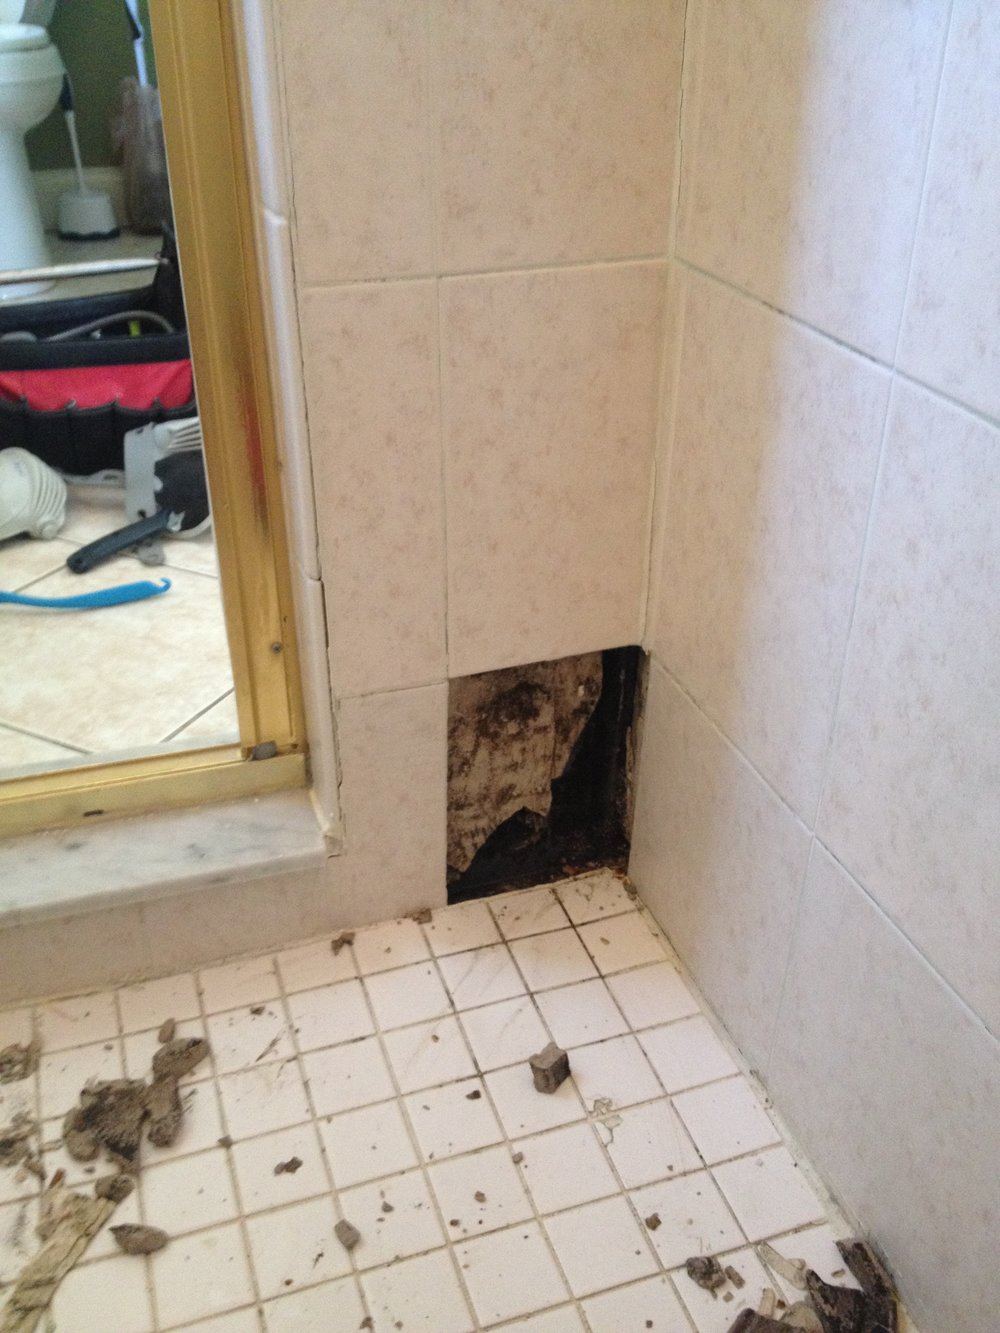 Cracked Tiles and Grout